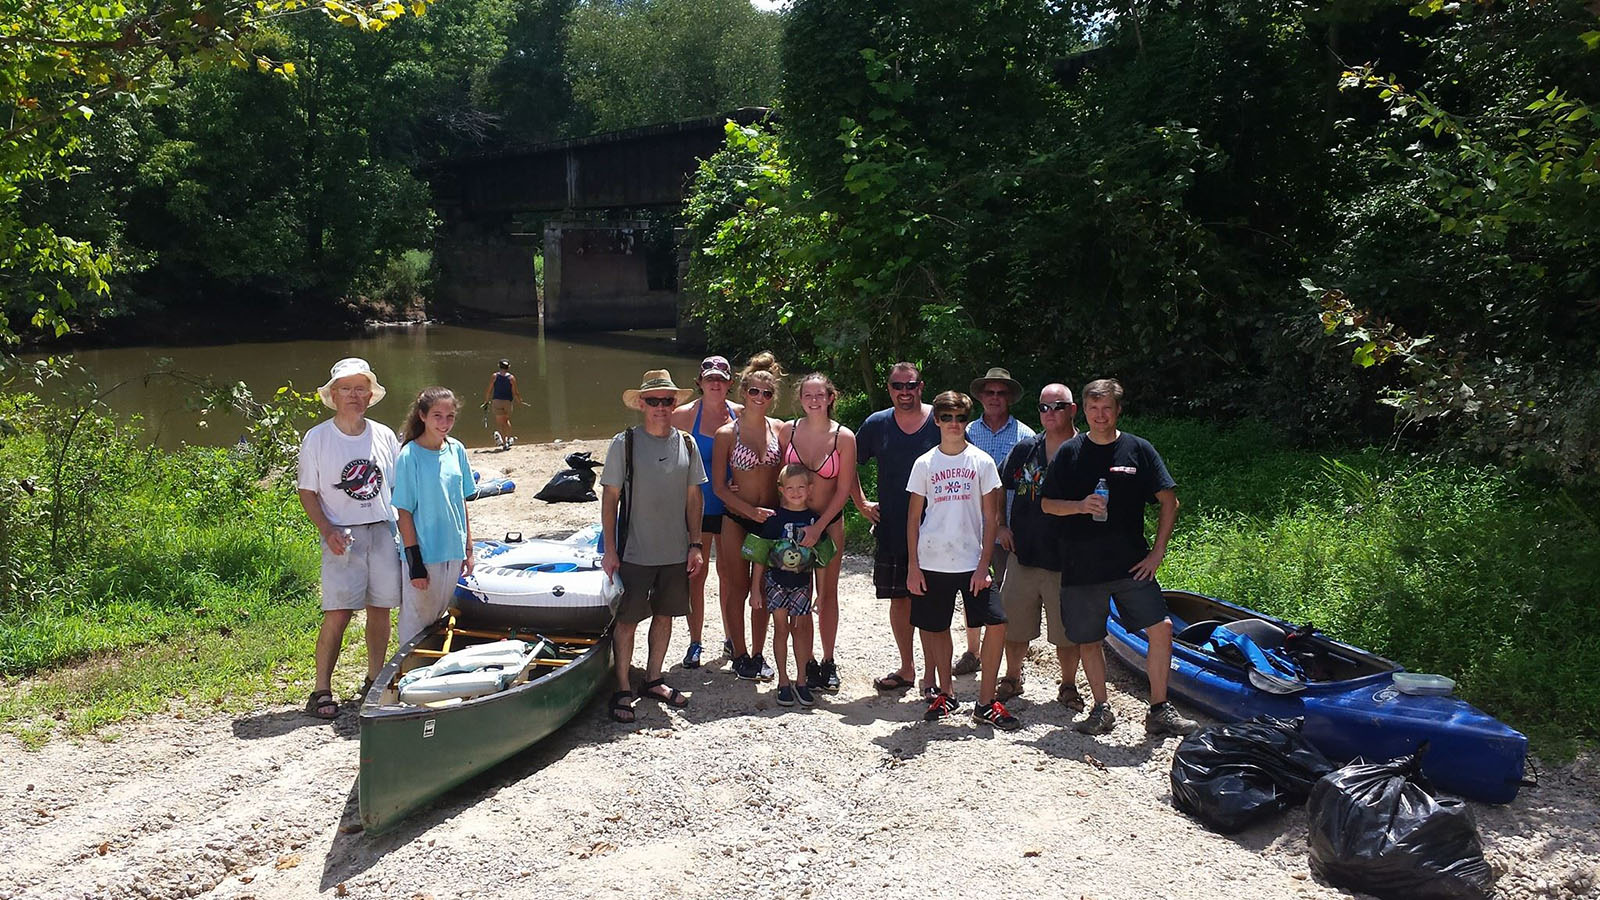 08/16 Neuse River Clean-Up, NC